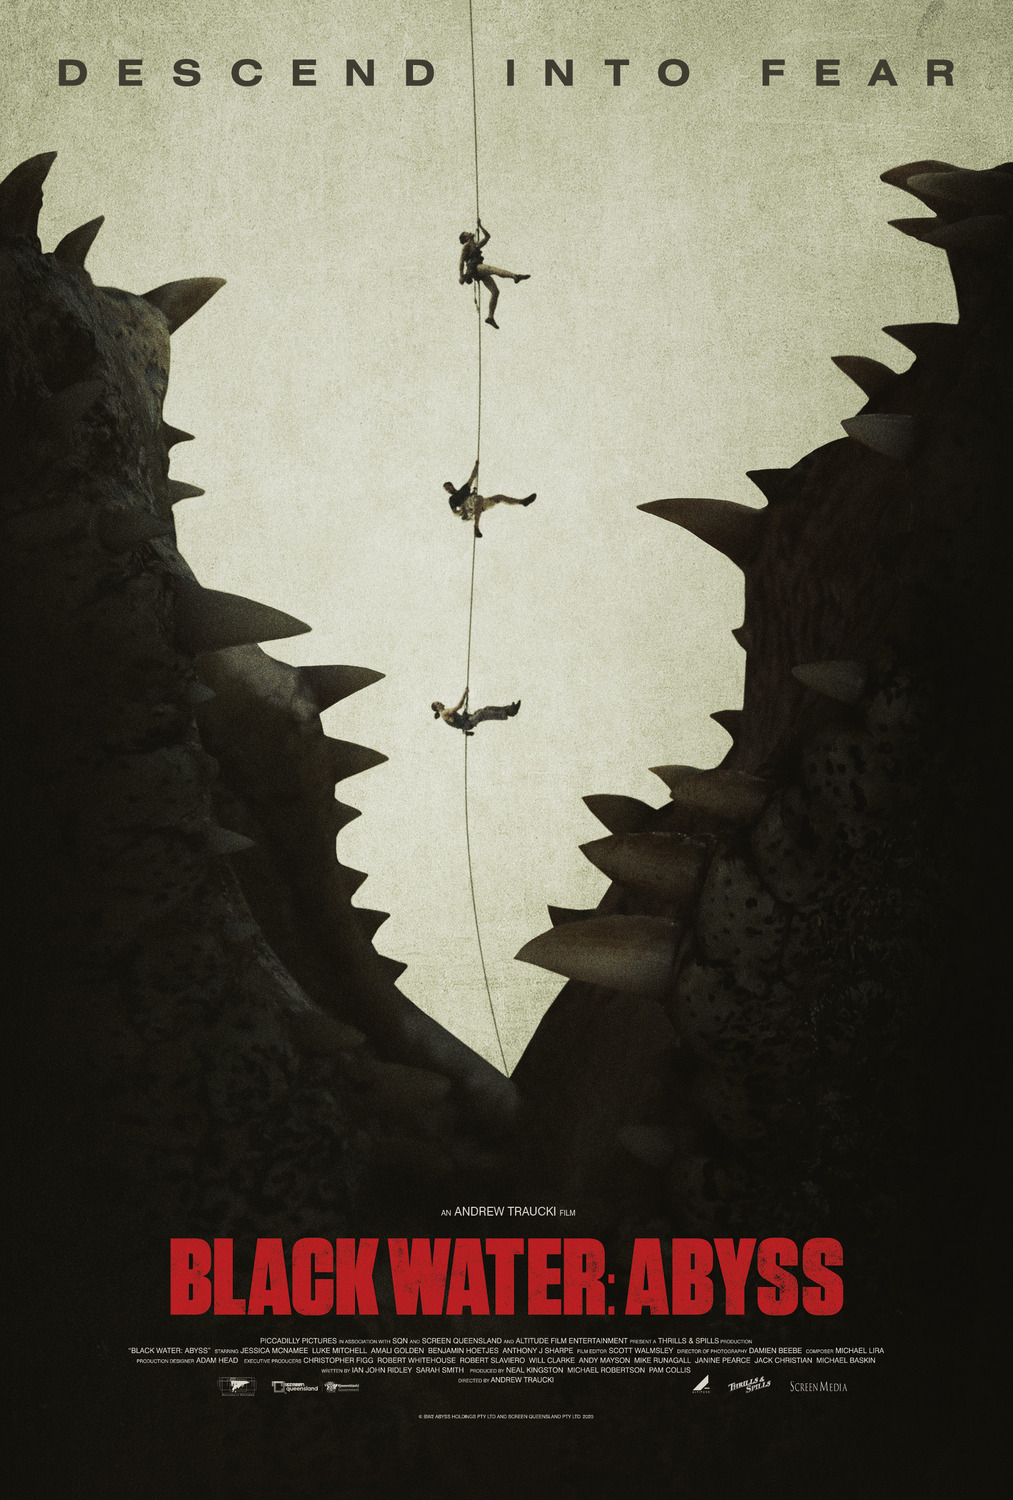 Extra Large Movie Poster Image for Black Water: Abyss (#1 of 2)